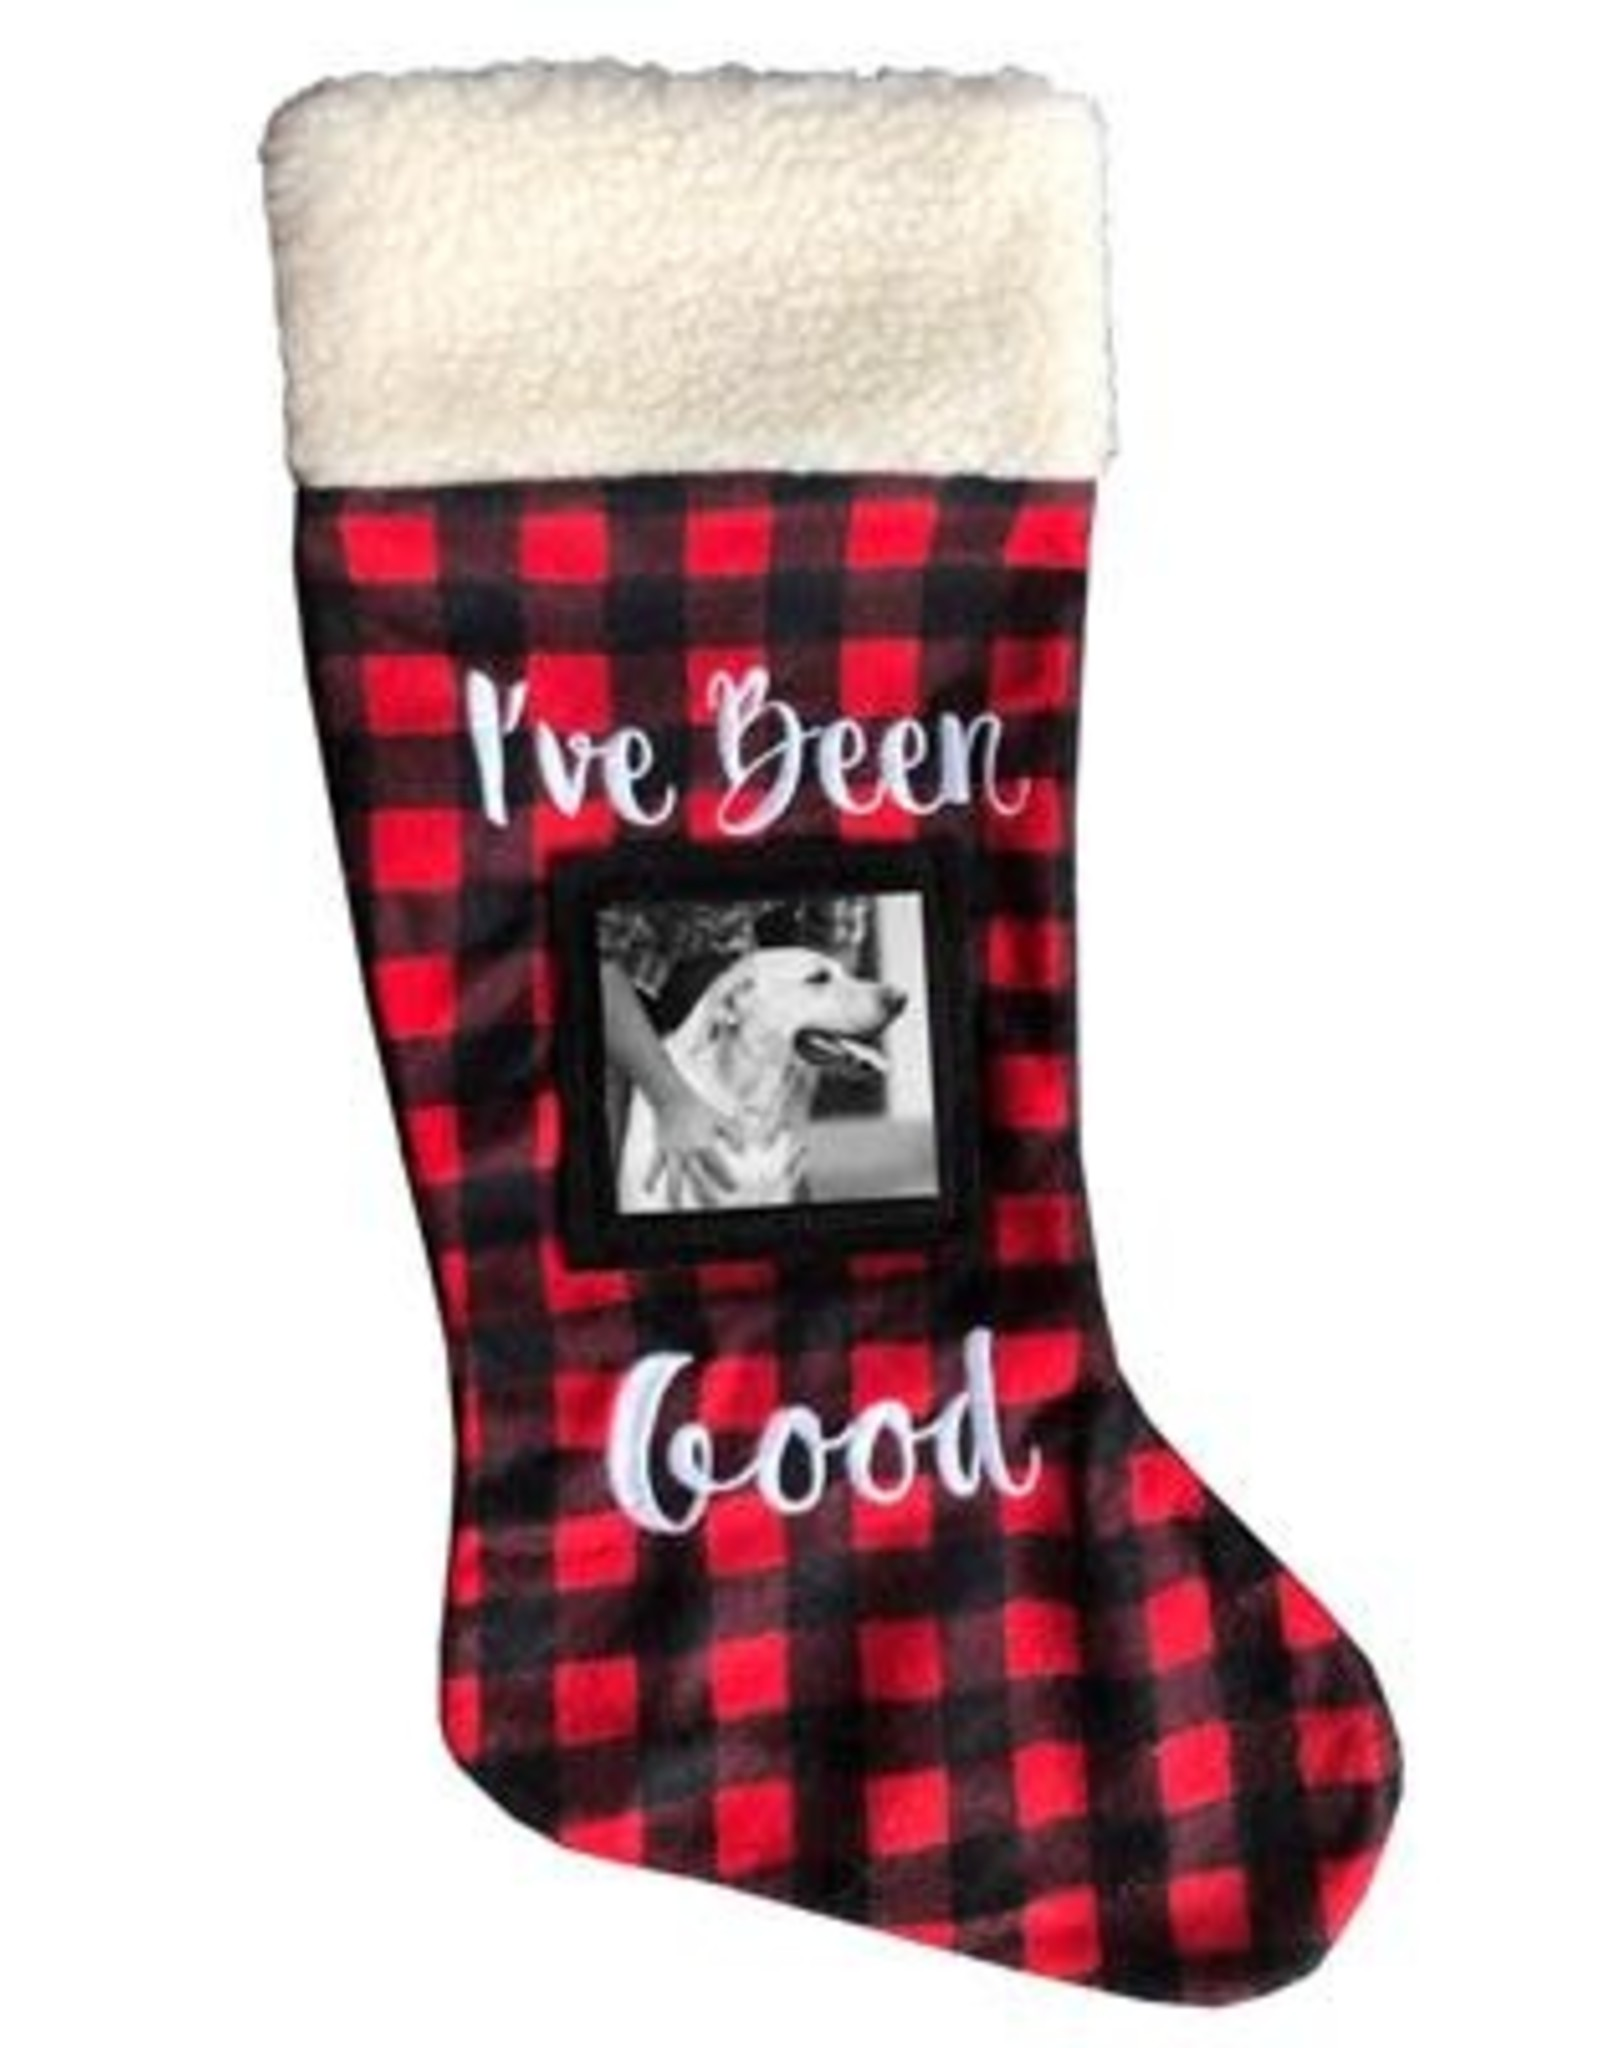 Holiday Stocking - I've Been Good